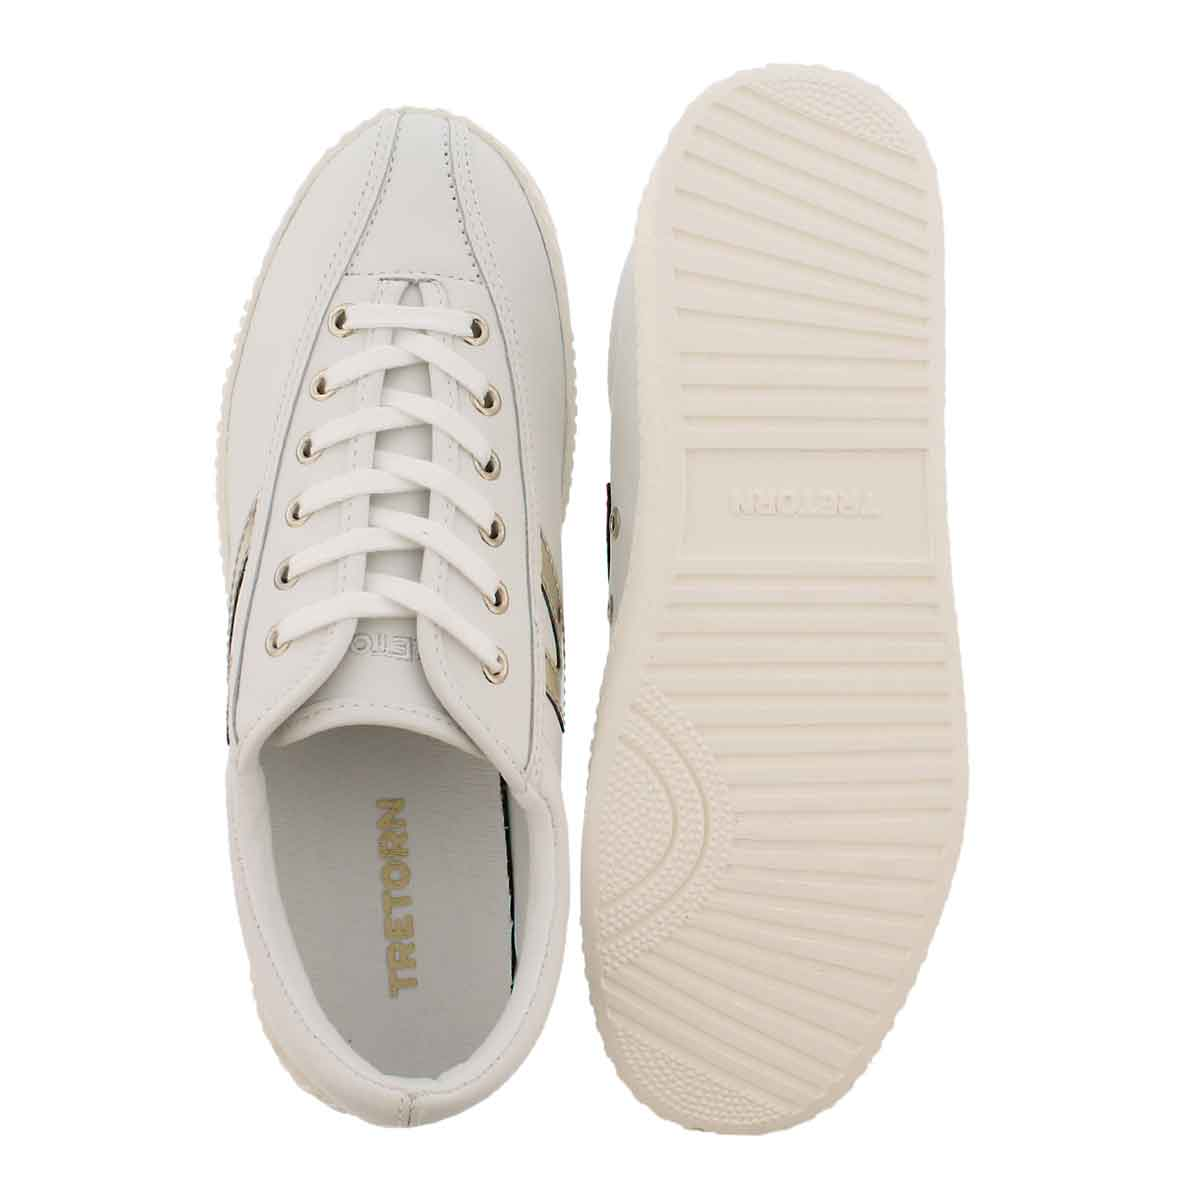 Lds Nylite 2 Plus white/gold sneaker